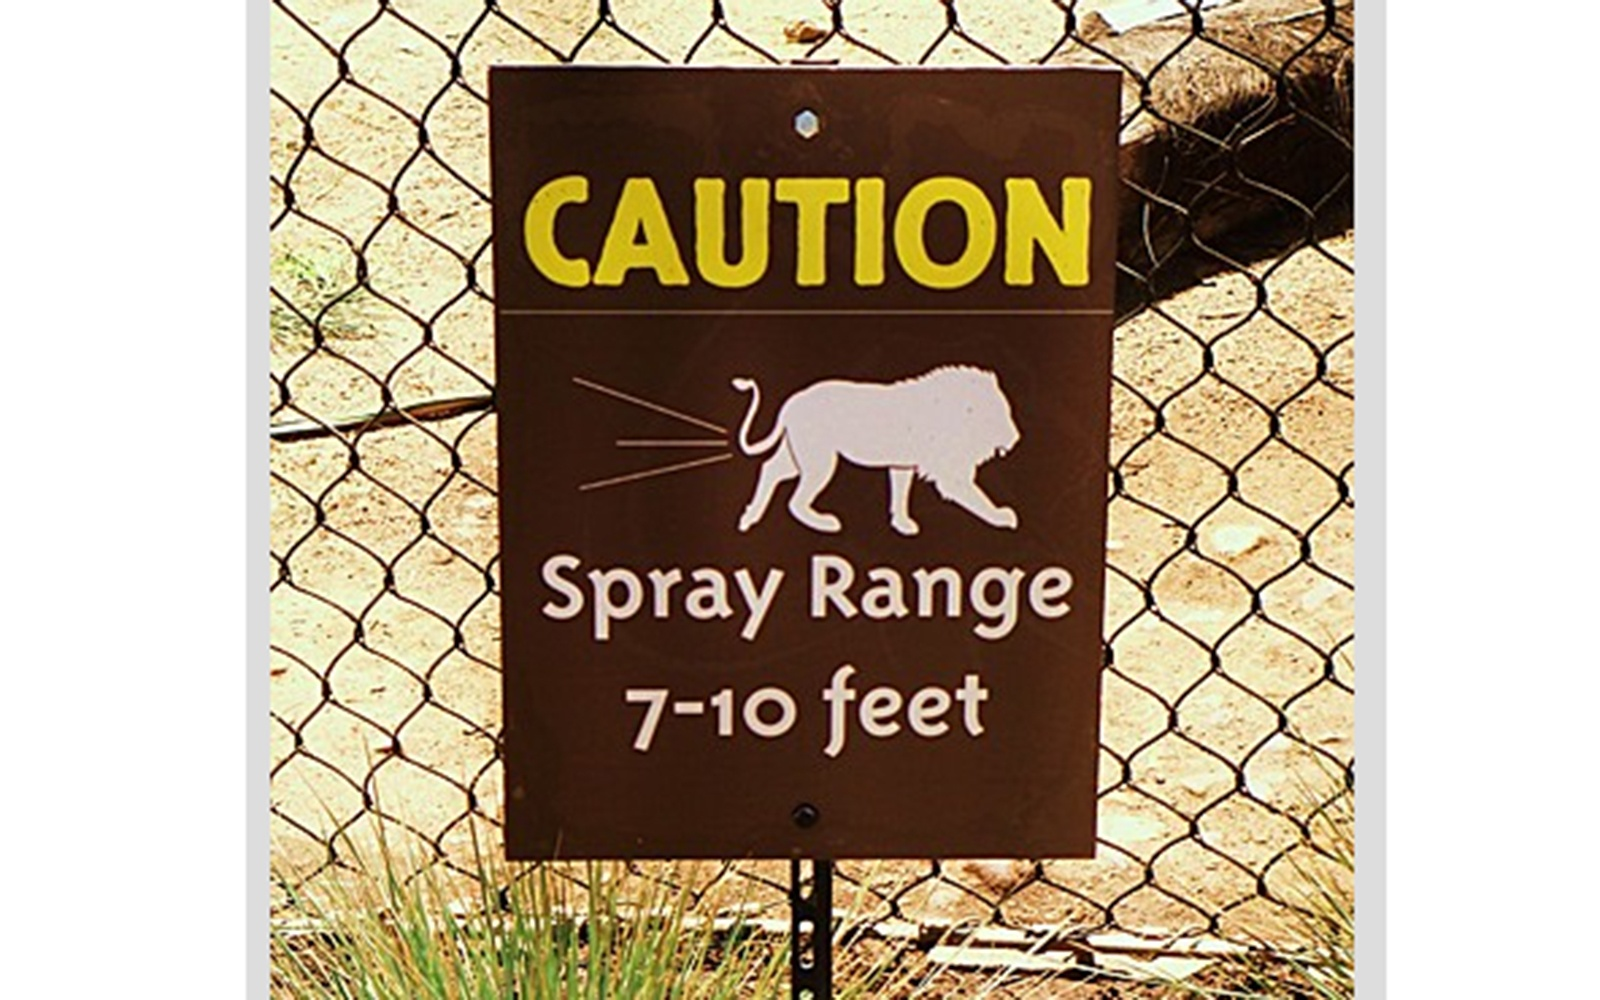 201209-w-funniest-signs-spray-range